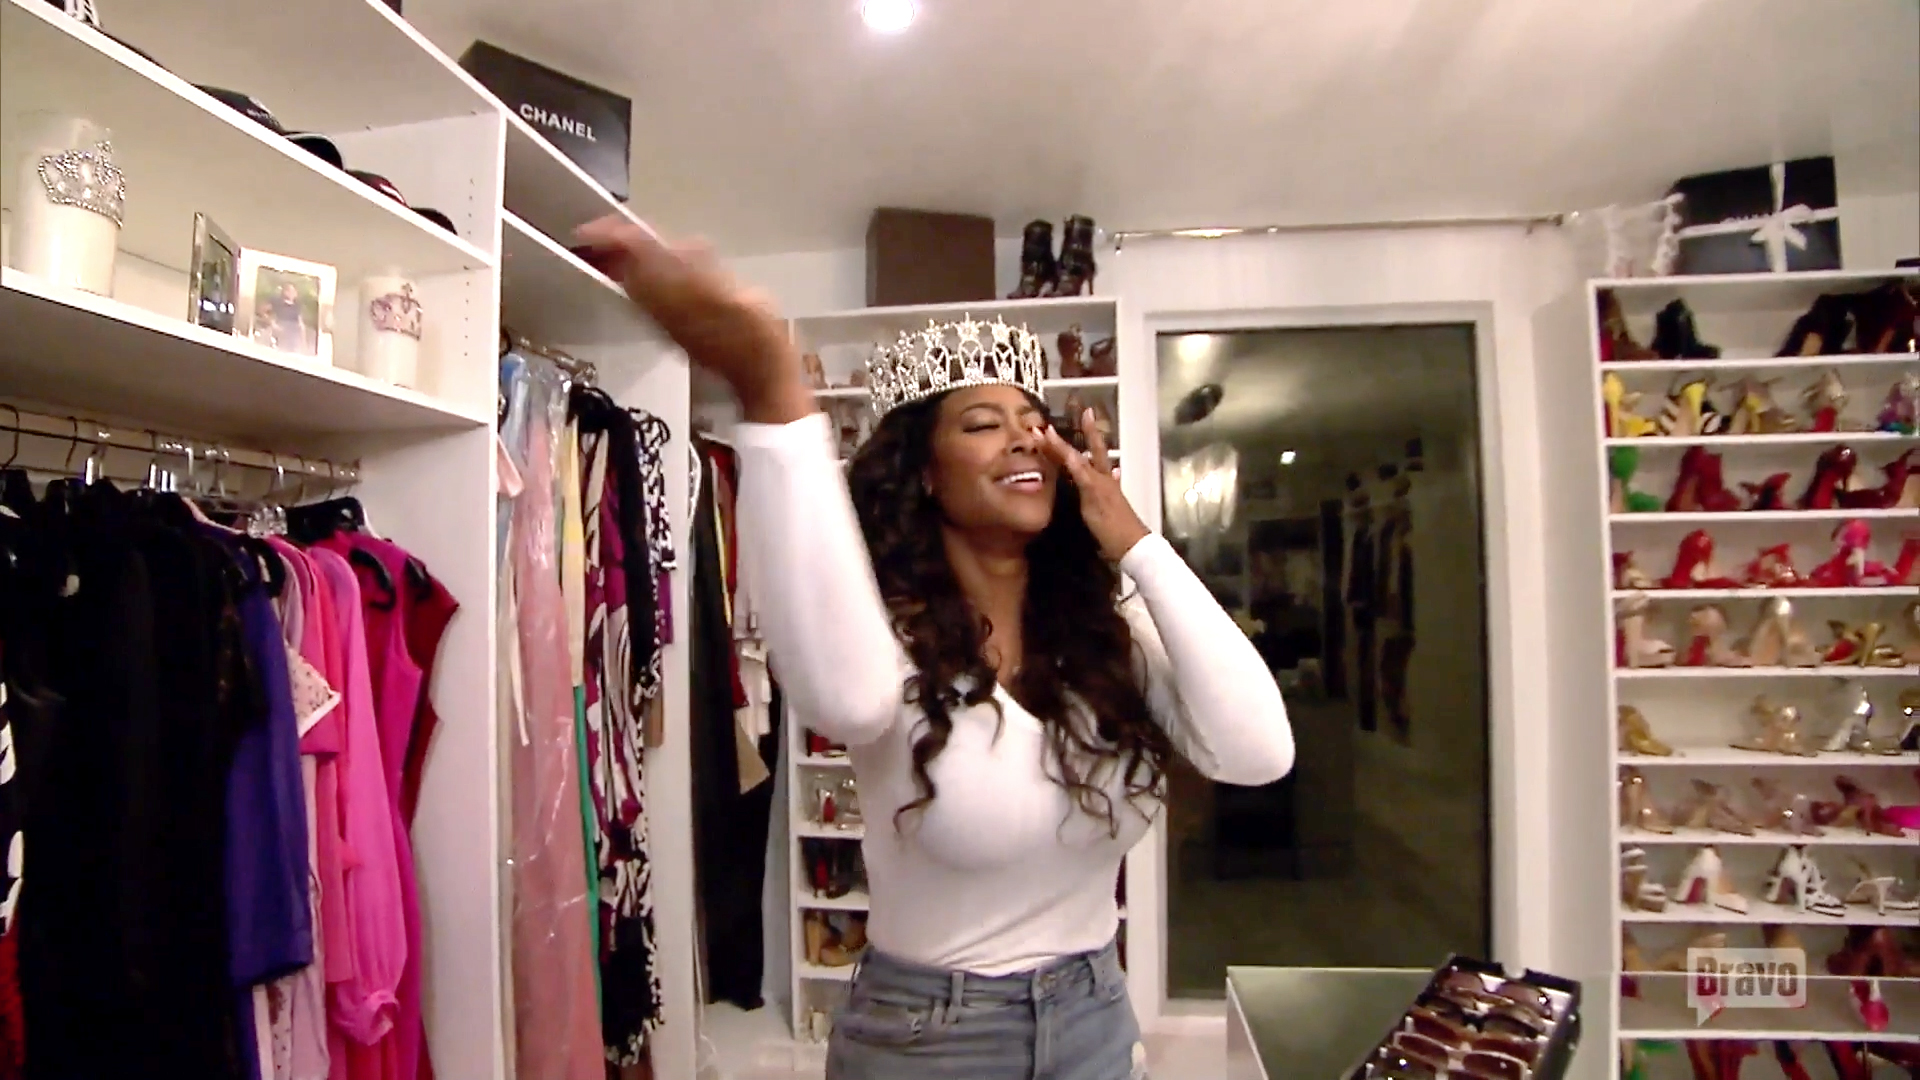 Bravo Stars Show Us Inside Their Extravagant Closets